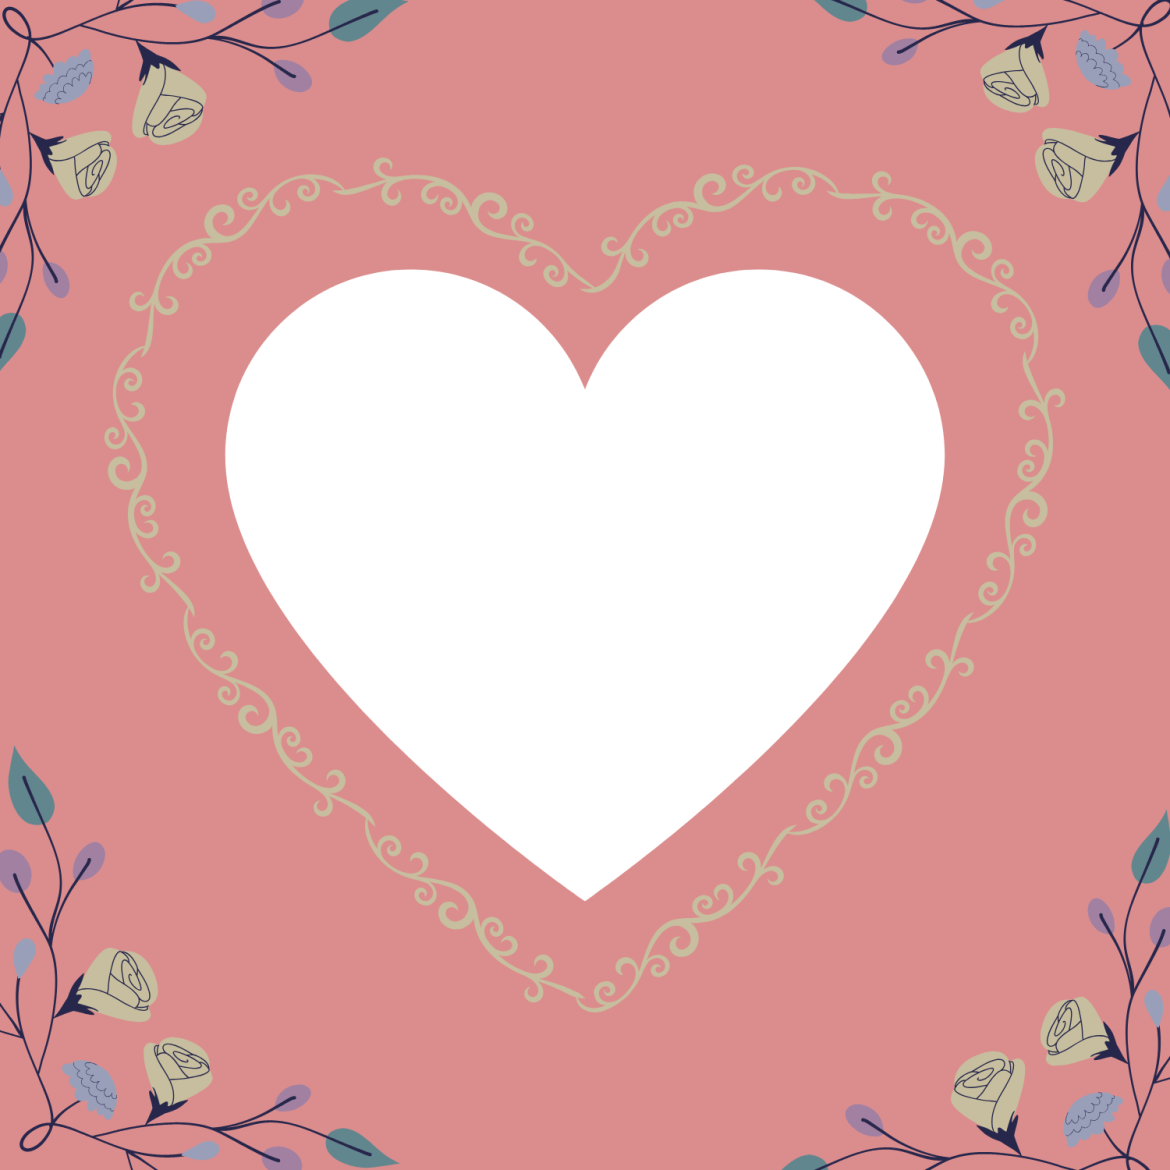 A medium-sized white heart outlined with flowers with a pink background